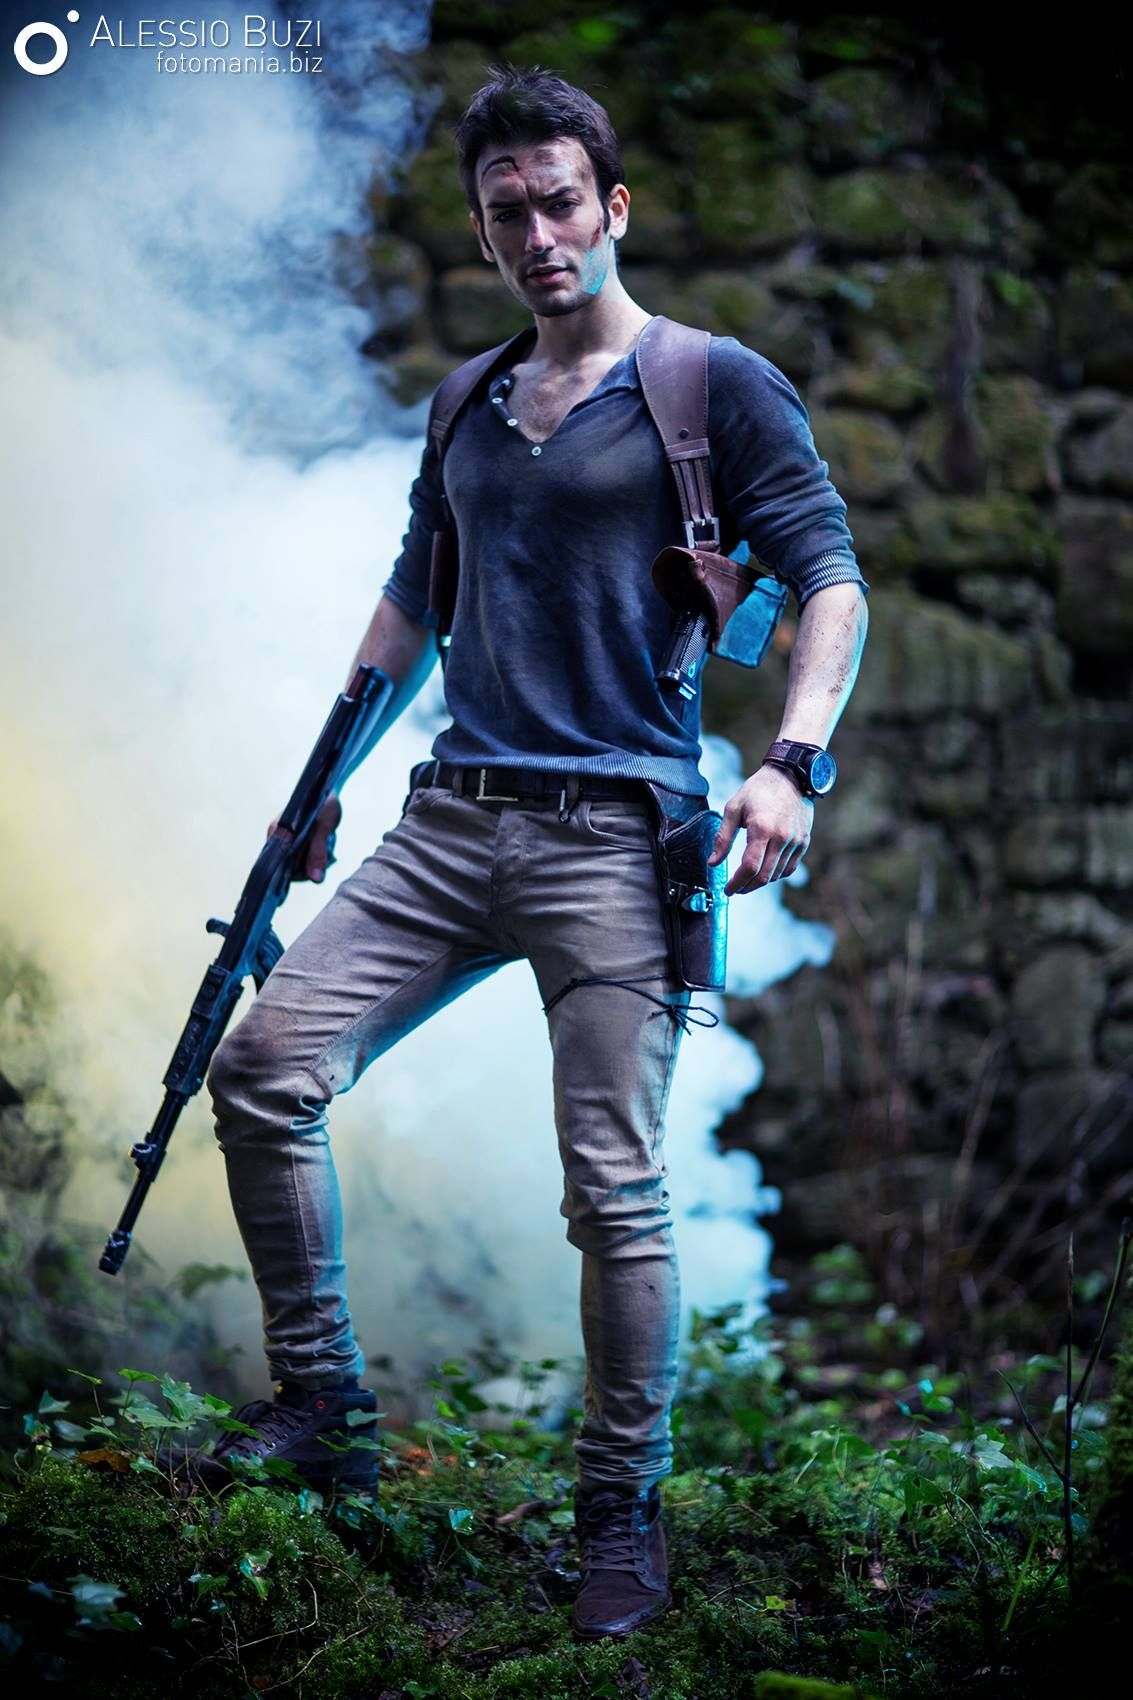 alessio buzi as nathan drake from uncharted cosplay